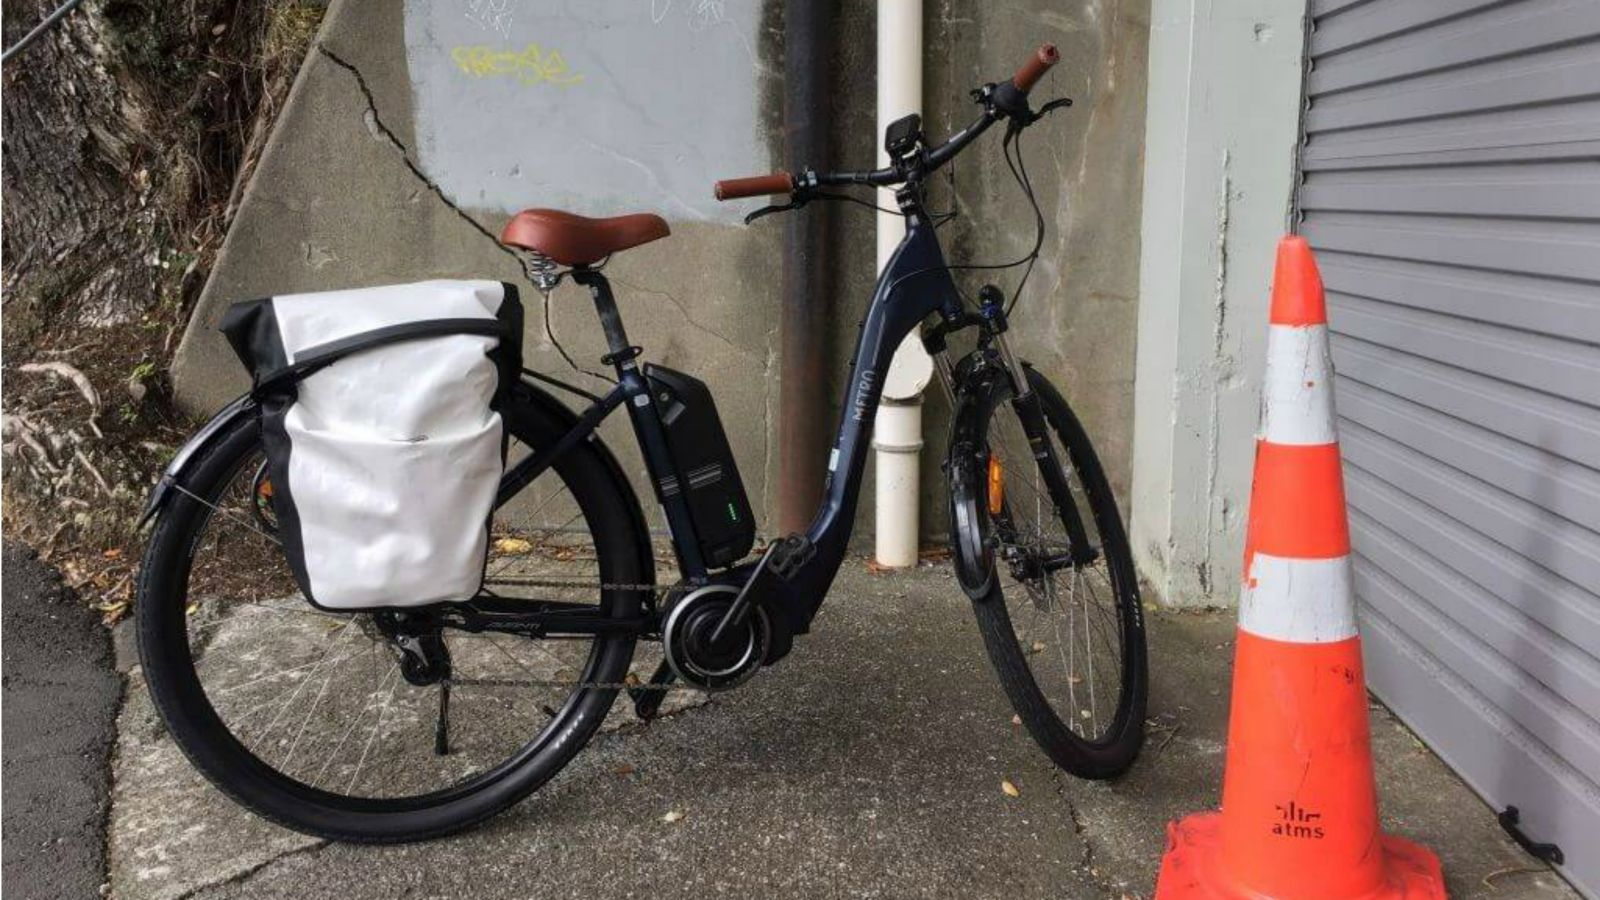 University staff shared ebike